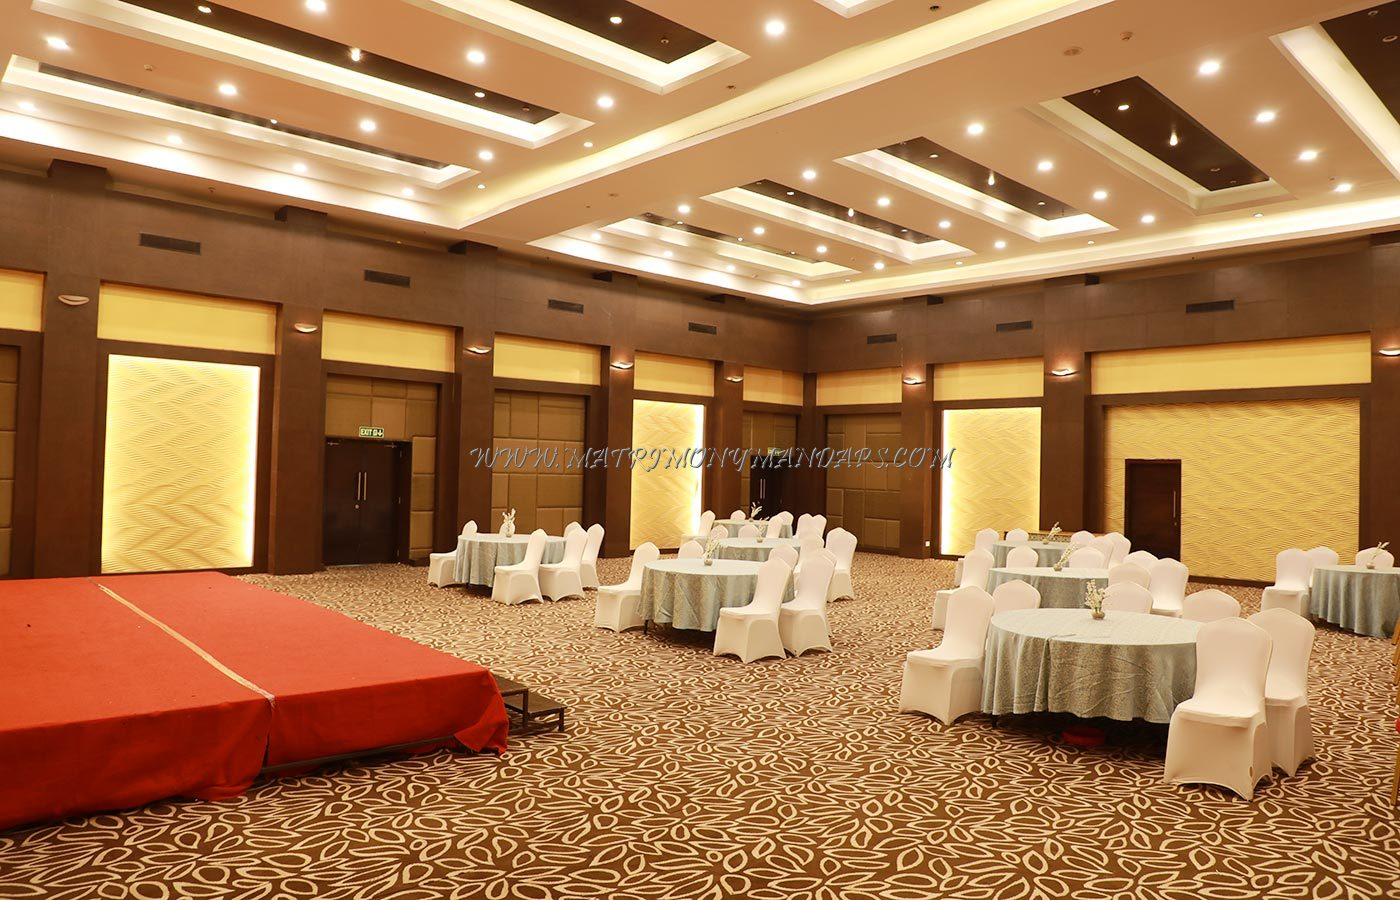 Find the availability of the Aloft Hotels The Hub Hall (A/C) in Sholinganallur, Chennai and avail special offers